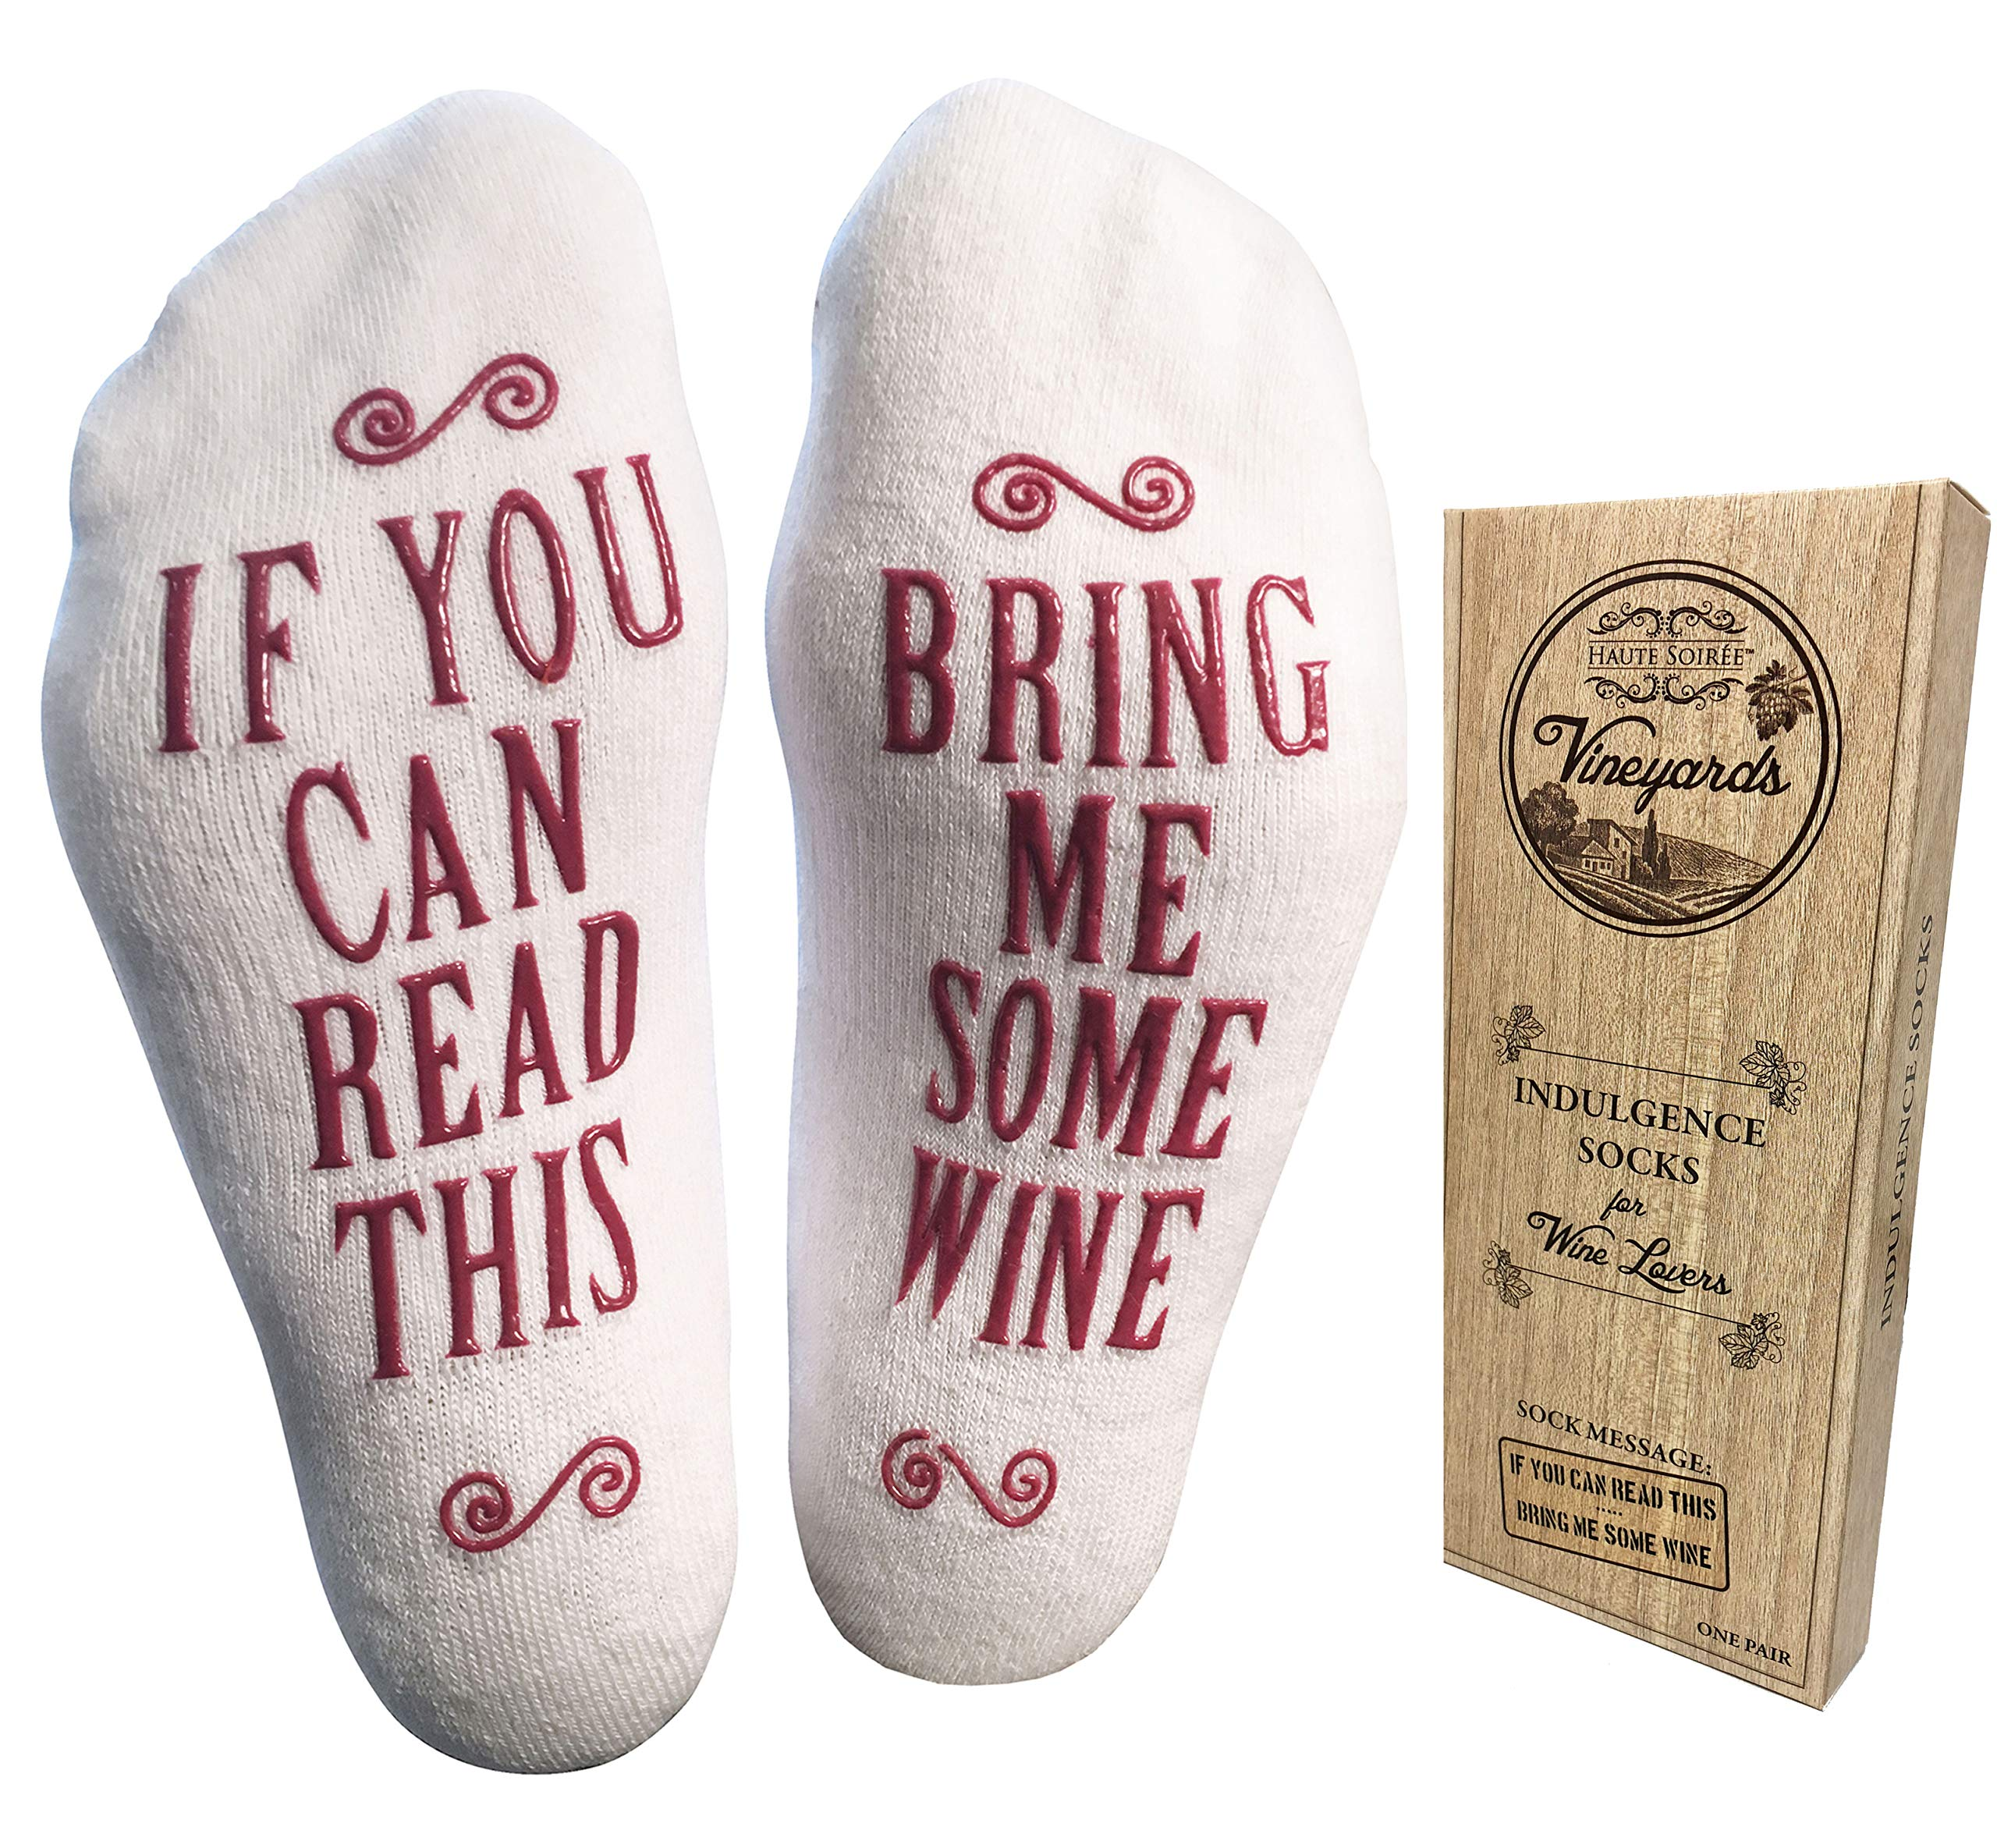 The-Original-If-You-Can-Read-This-Funny-Socks-Wine-Coffee-Chocolate-Gift-Idea-for-Women-and-Men-by-Haute-Soiree